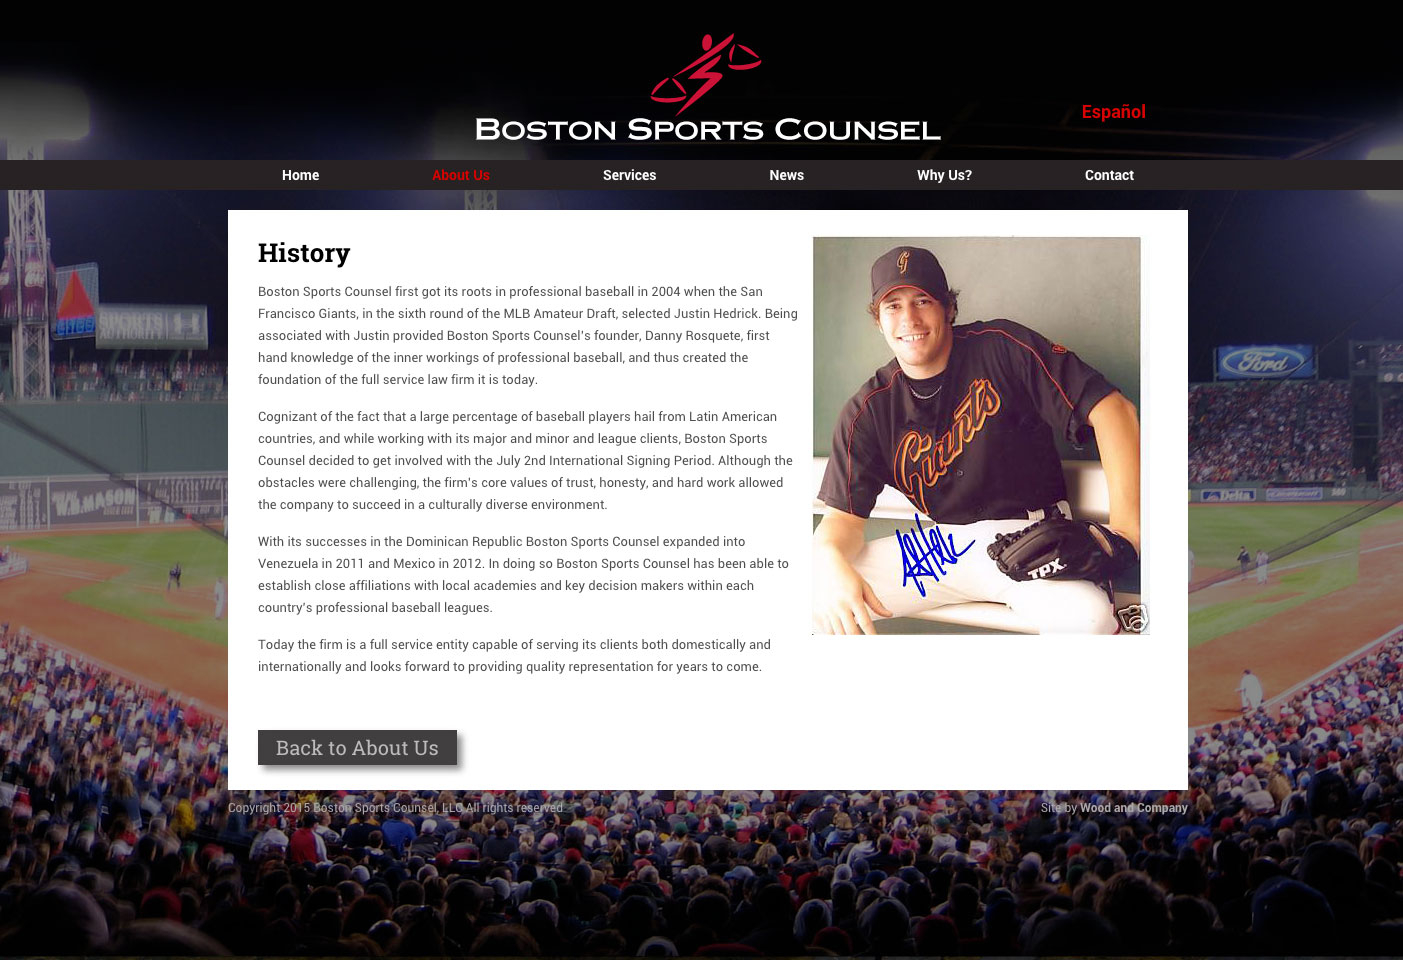 Boston Sports Counsel Website History